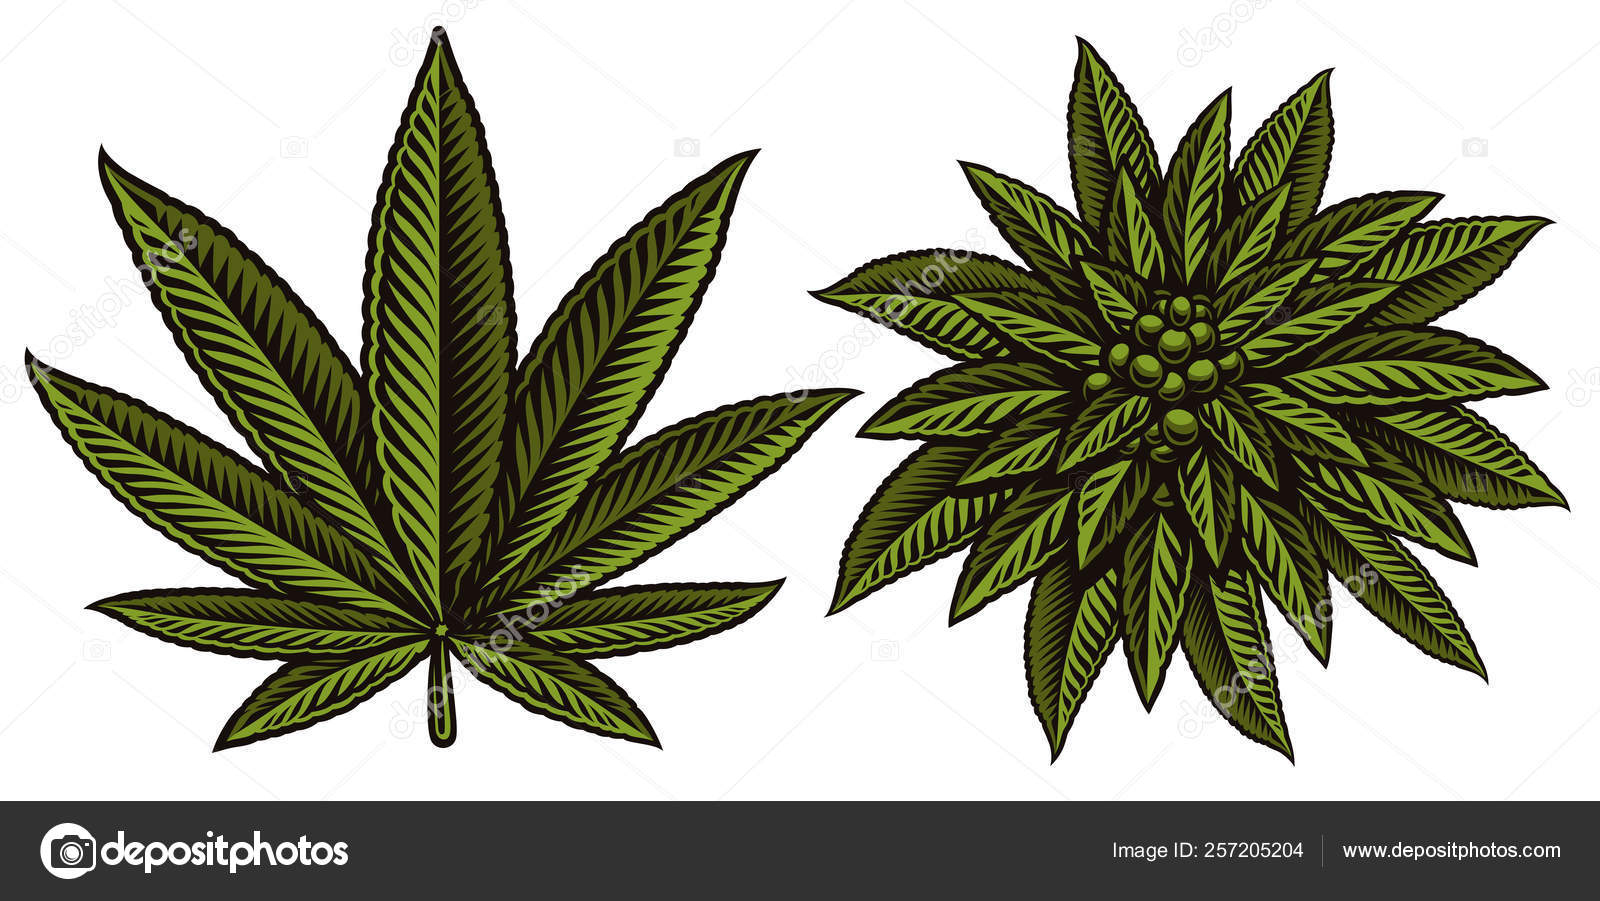 vector illustration of cannabis leafs on the white background stock vector c natali shtern 257205204 https depositphotos com 257205204 stock illustration vector illustration of cannabis leafs html